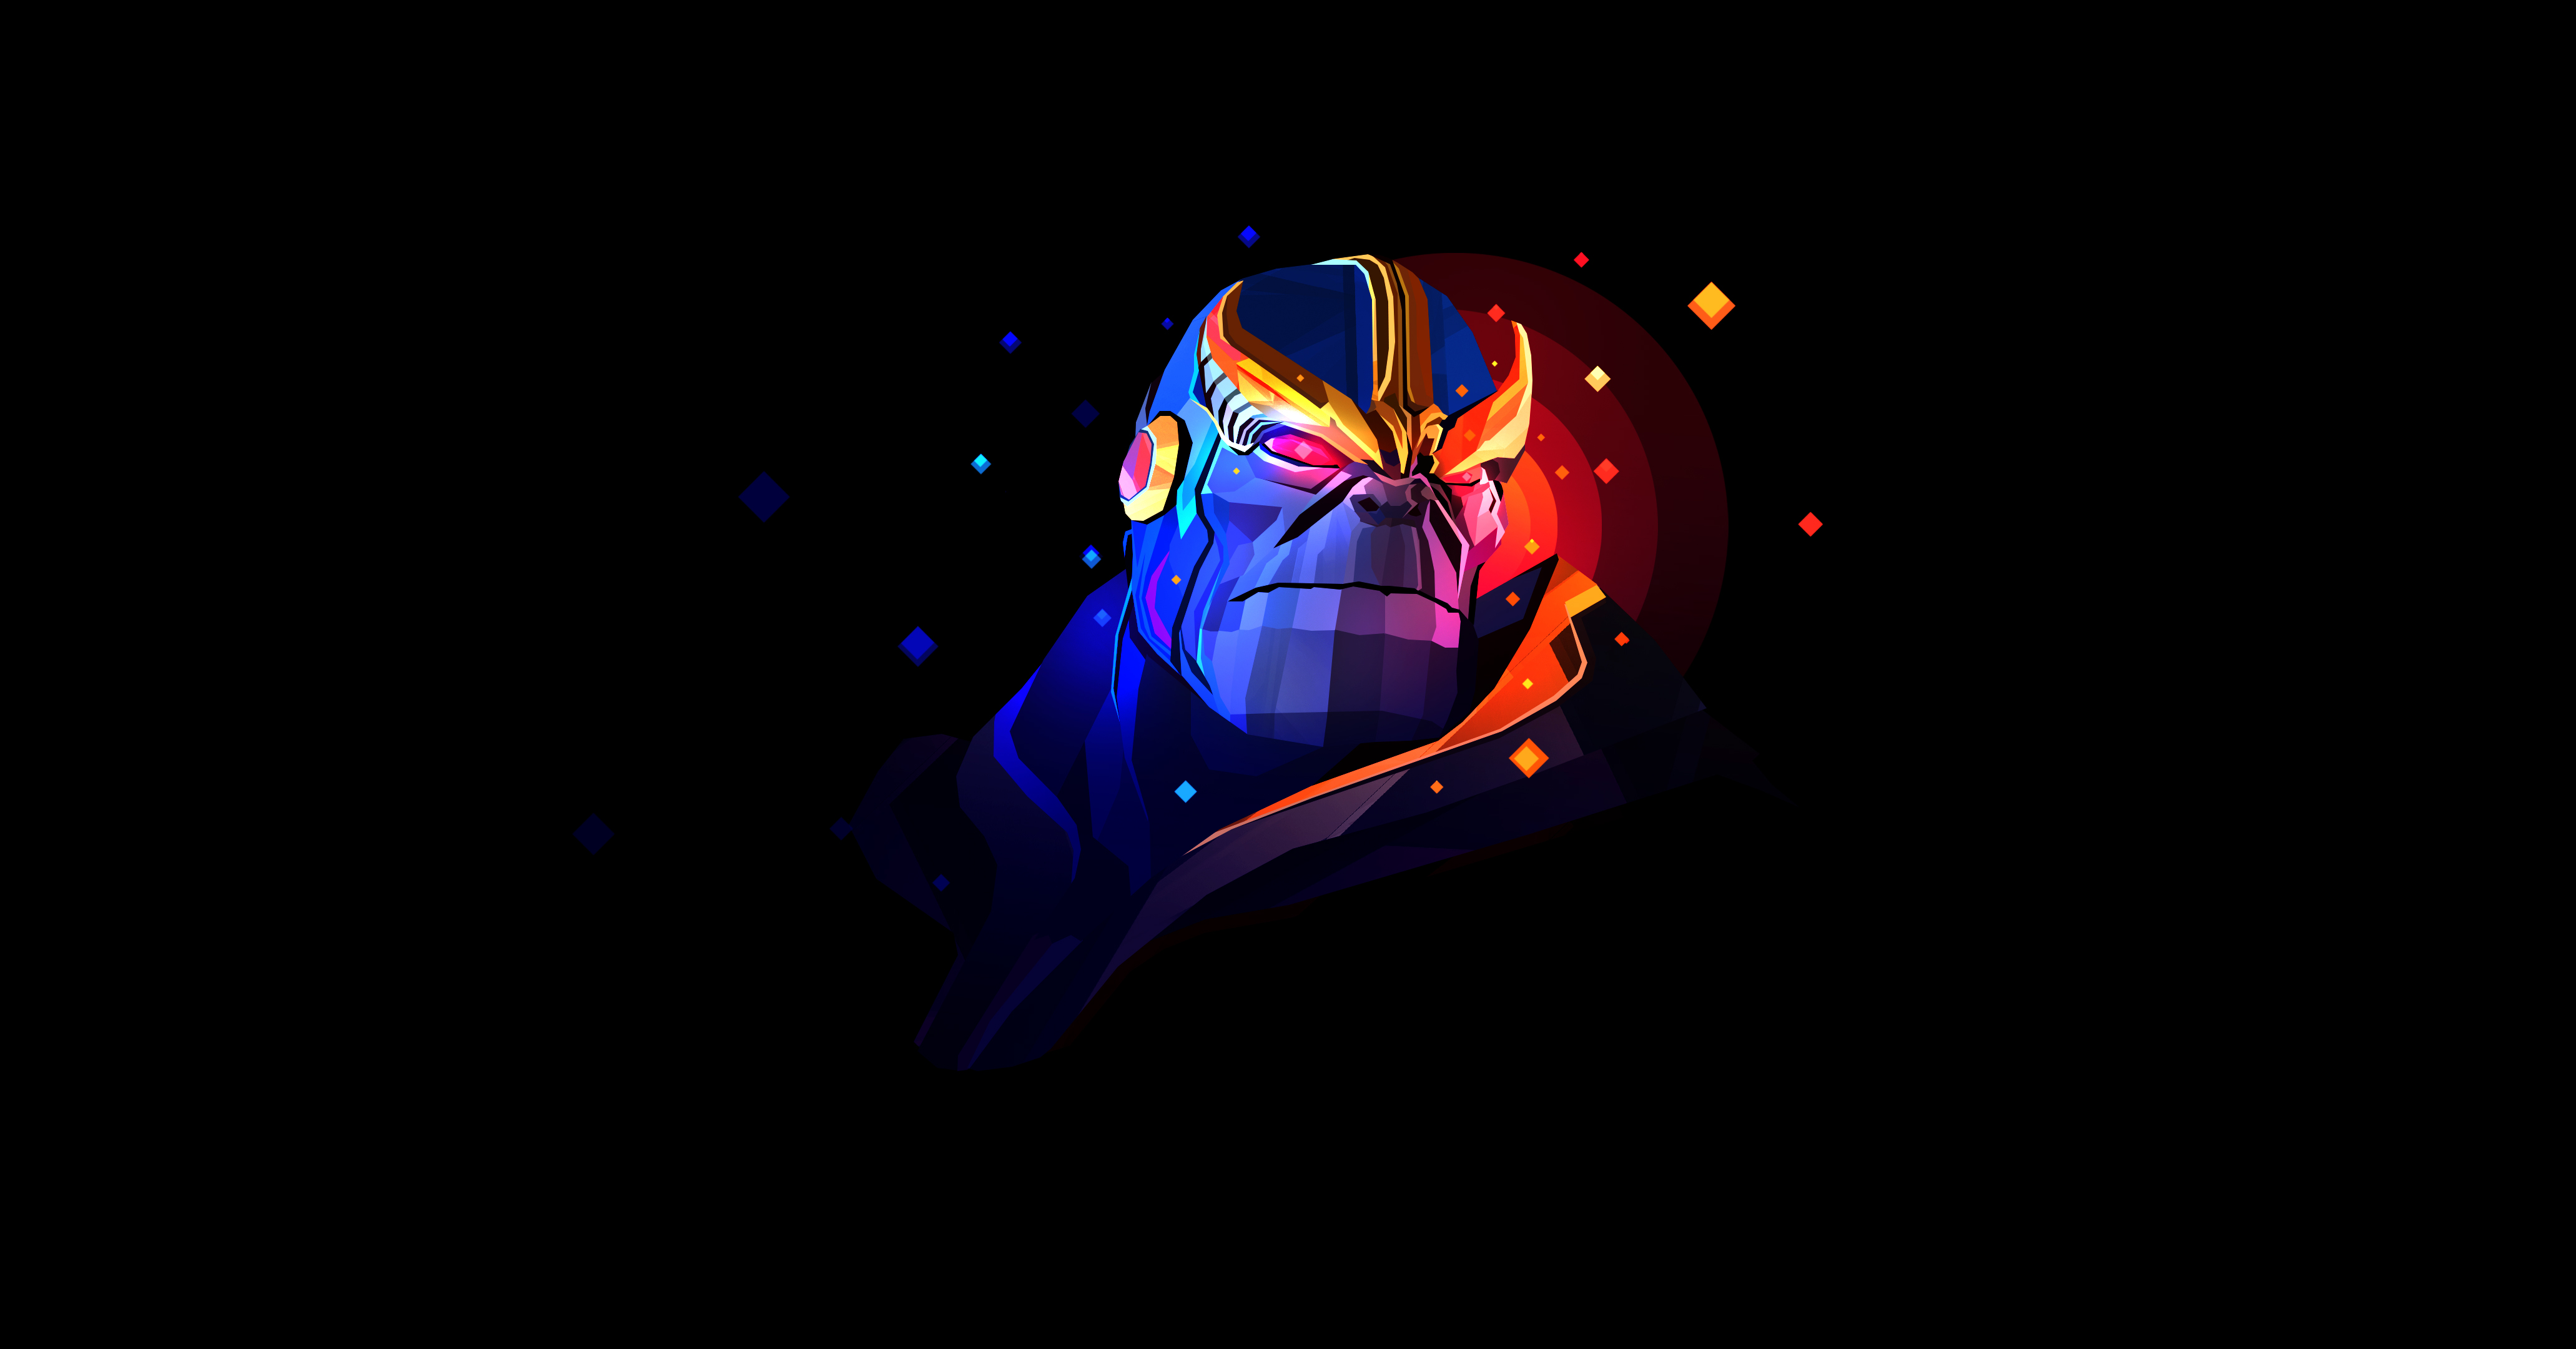 thanos artwork by justin maller  hd 4k wallpaper xbox symbol vector xbox 360 logo vector